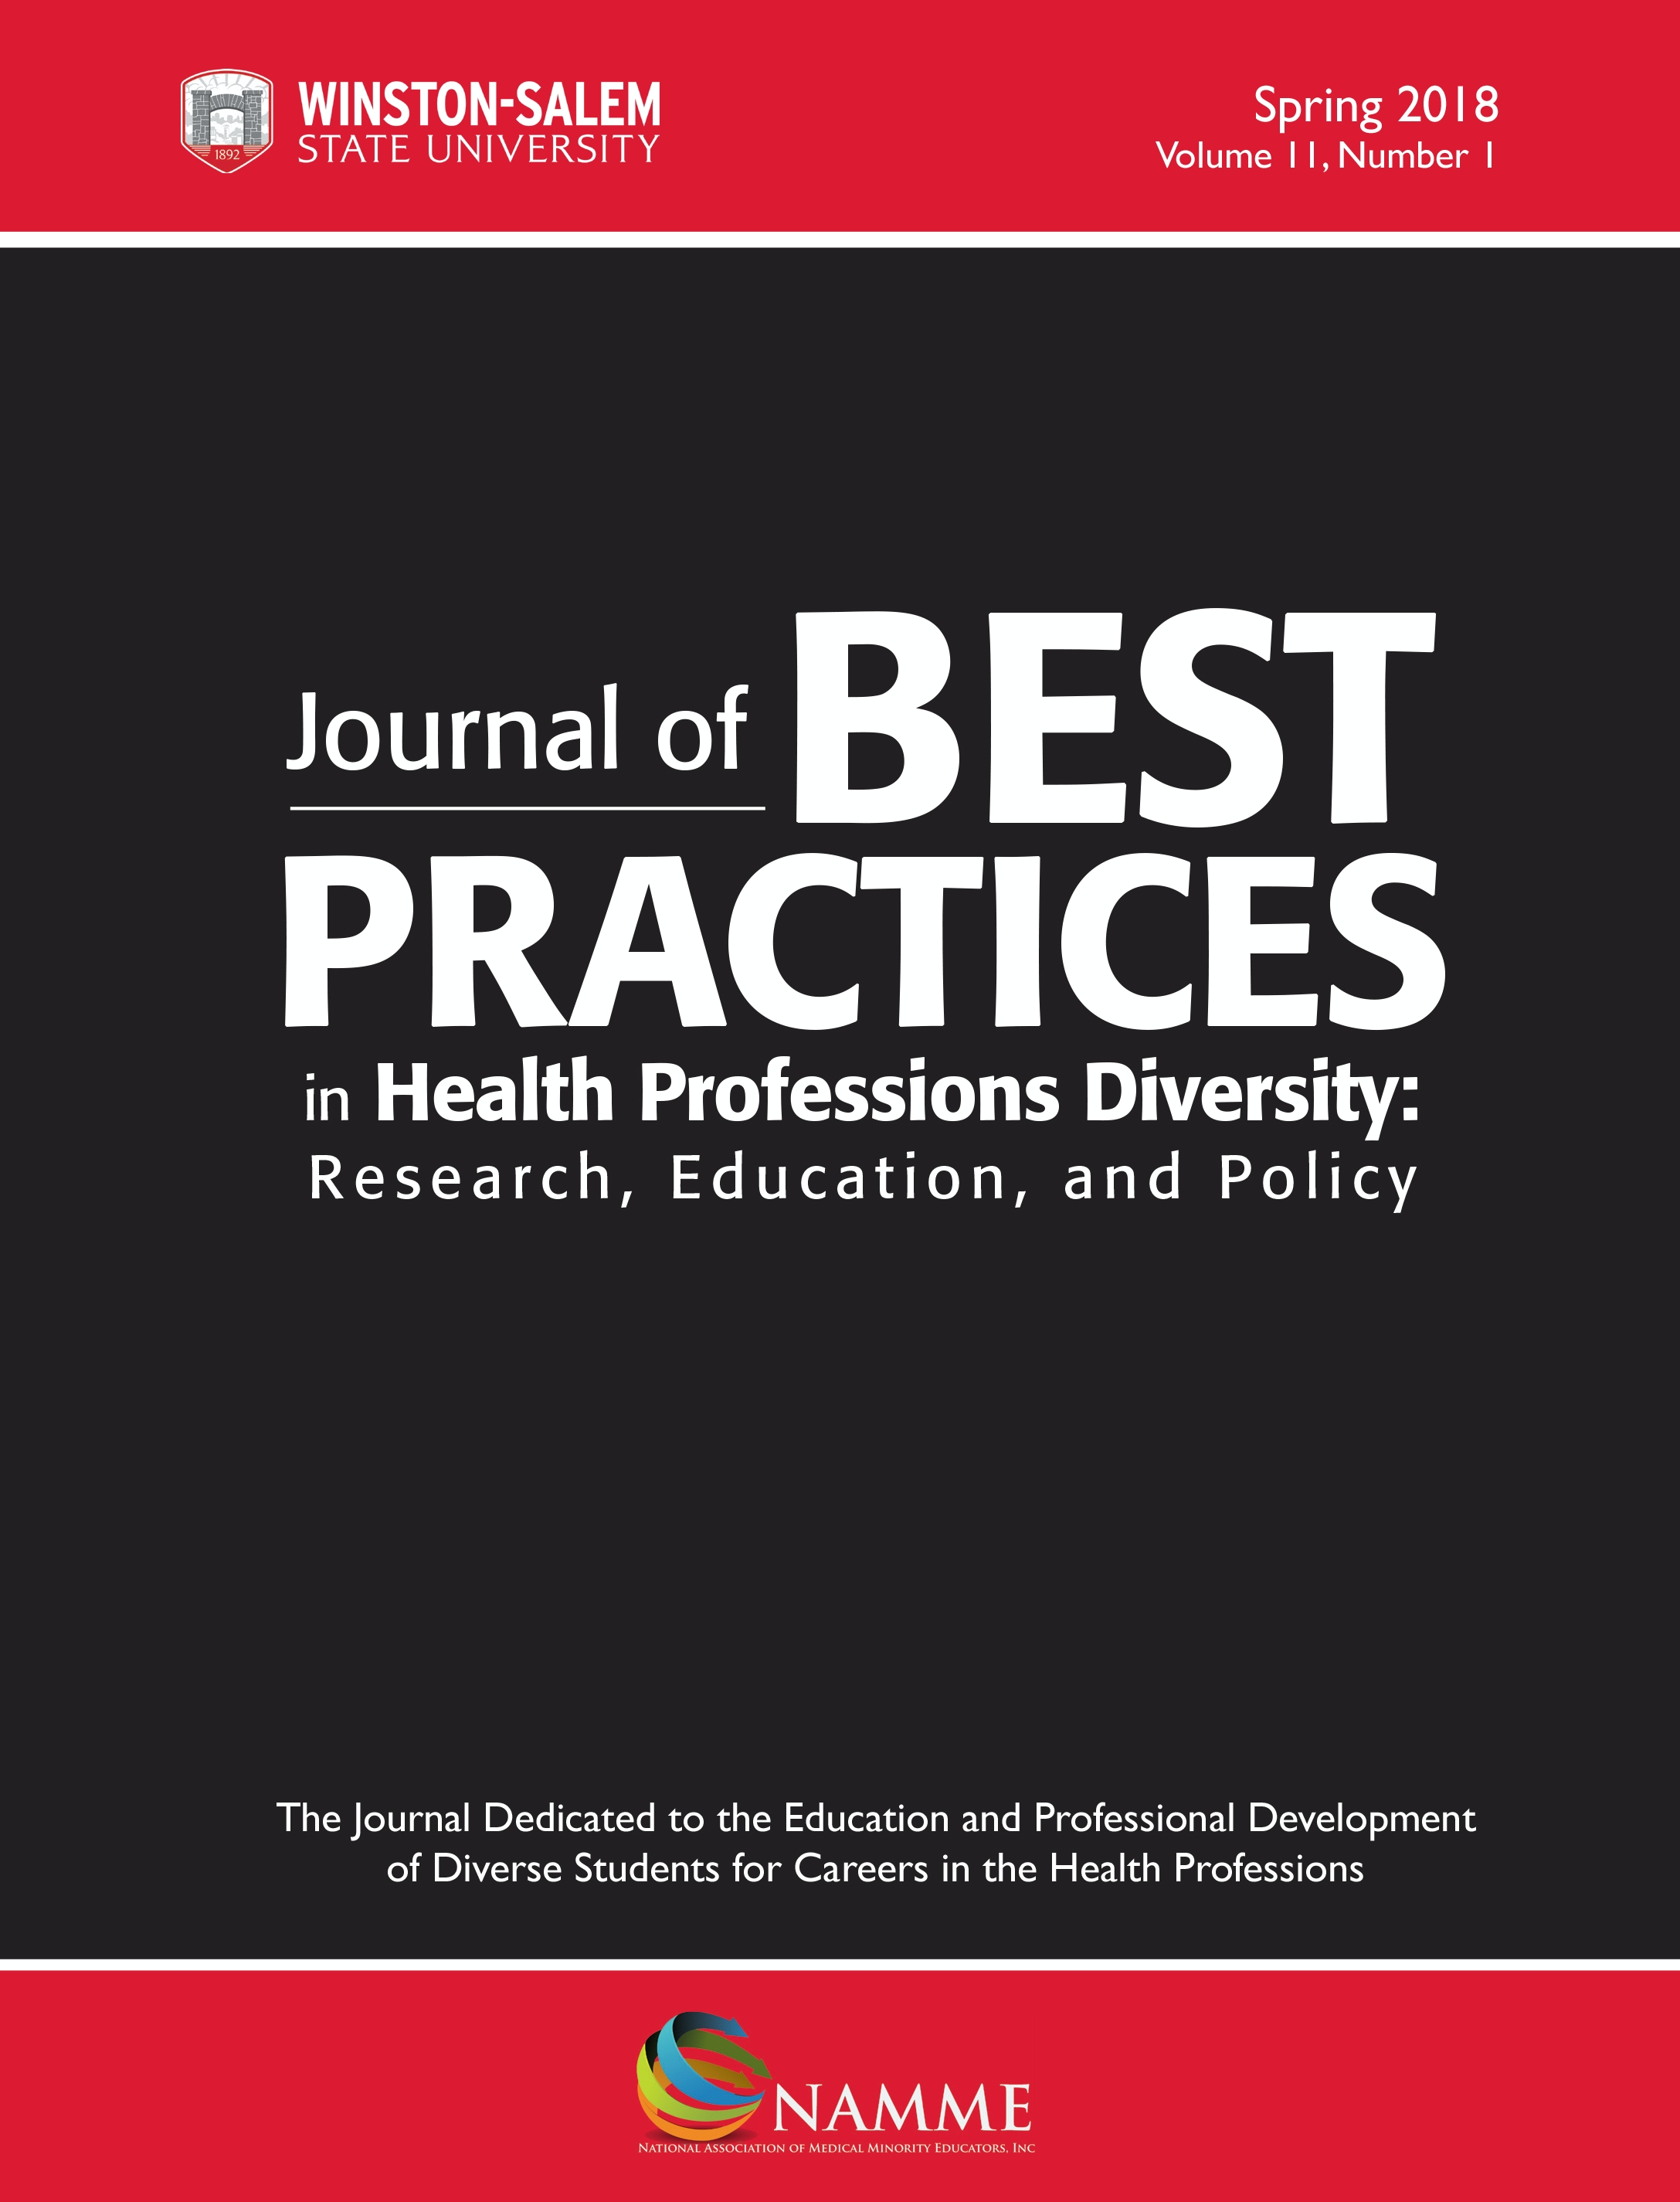 Journal of Best Practices in Health Professions Diversity: Research, Education, and Policy, vol. 11 issue 1